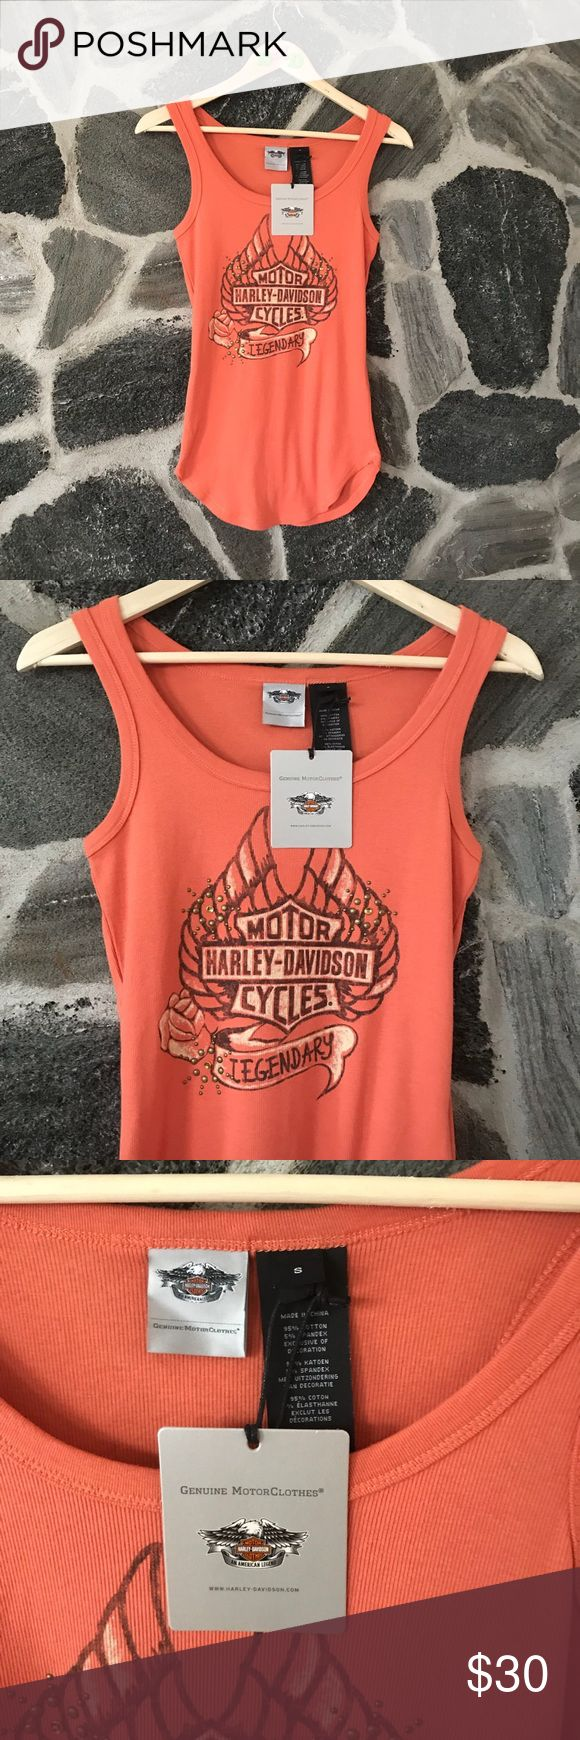 classic | NWT 🏷 ladies HARLEY DAVIDSON tank top • BRAND NEW WITH TAGS‼️ • orange ribbed Ladies HARLEY DAVIDSON wife beater like tank top •  + size: small + super cute! Stretchy ribbed material, runs as all HD tanks top, just a tad bit big. Basic but super cute and brand new. Great for a last minute gift for your biker bestie!  #harley #harleydavidson #motorcycle #biker #orange Harley-Davidson Tops Tank Tops